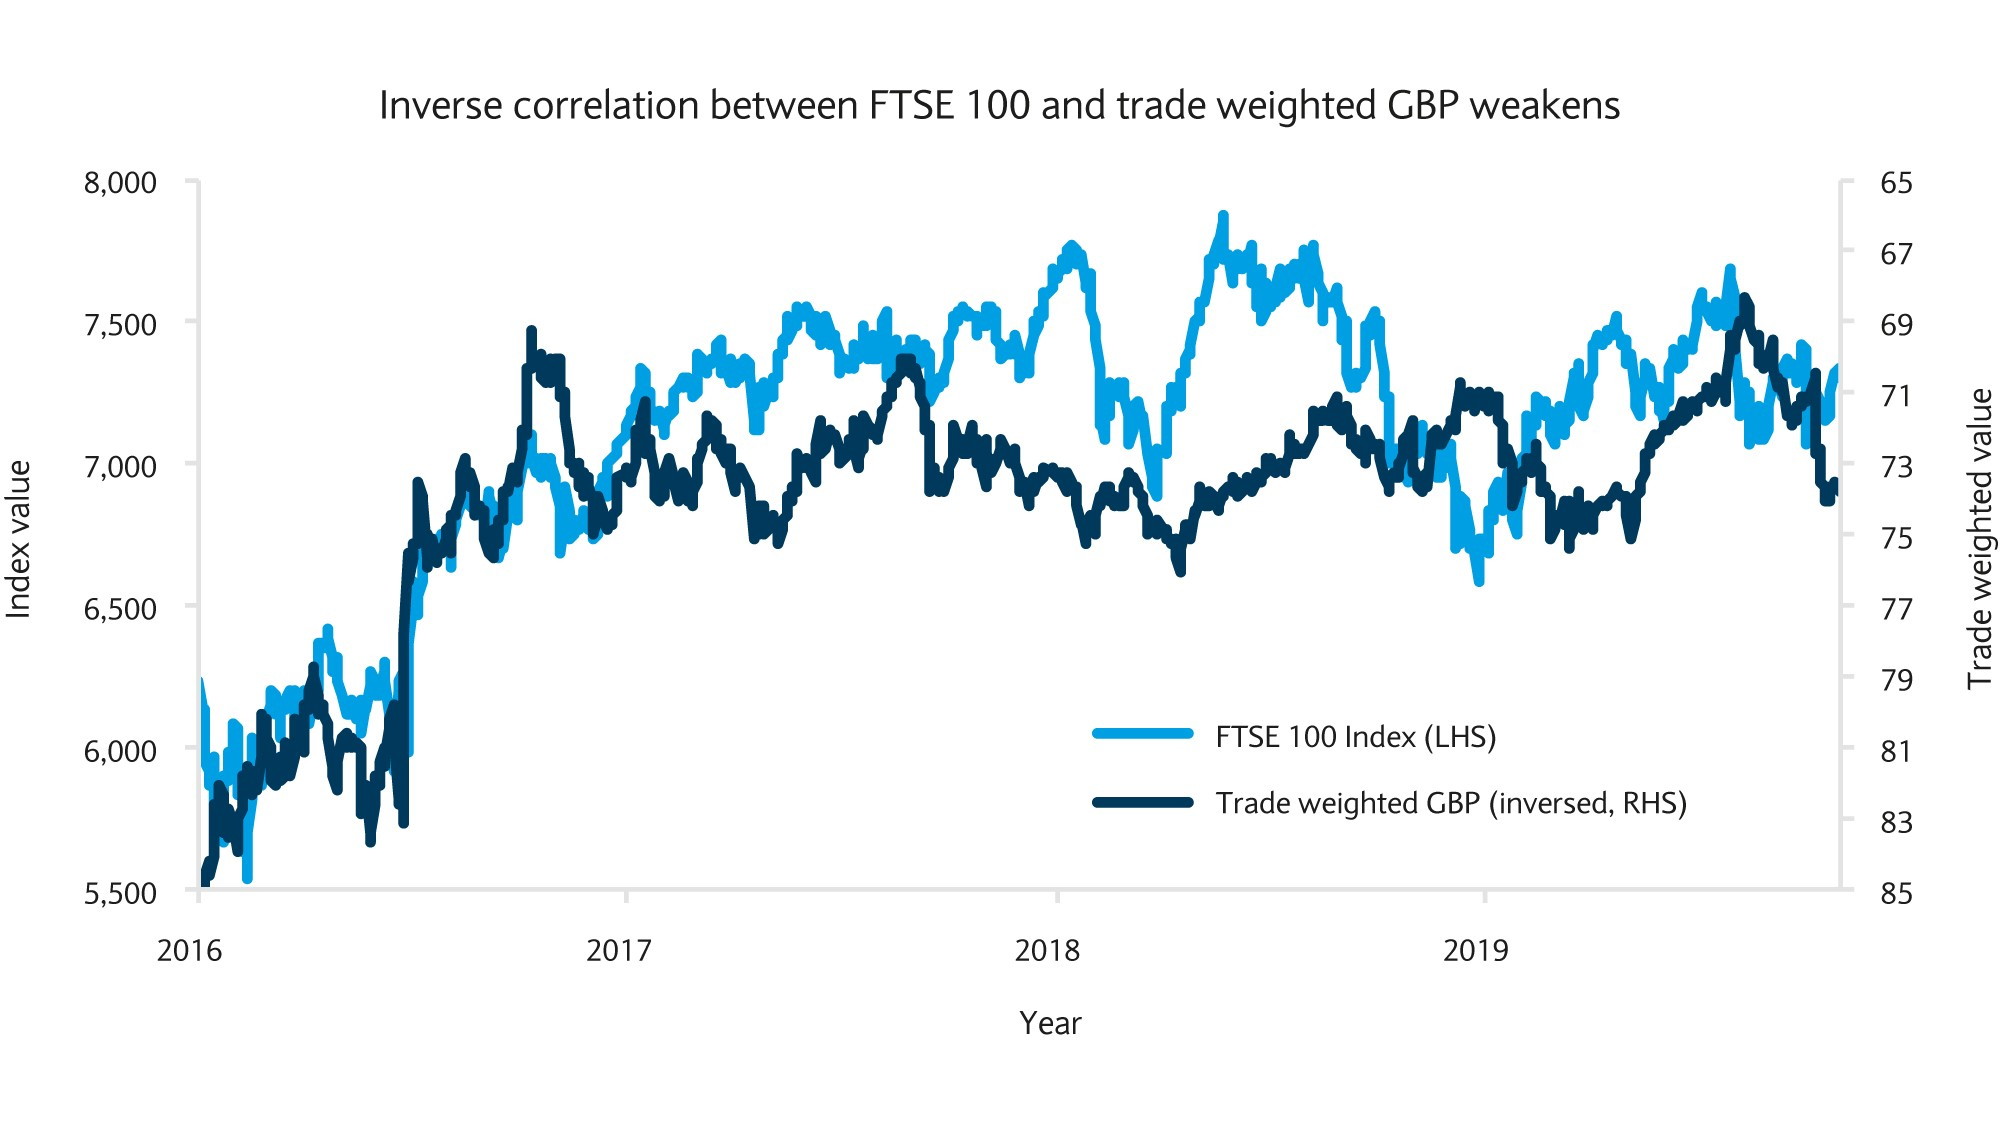 Inverse correlation between FTSE 100 and trade weighted GBP weakens